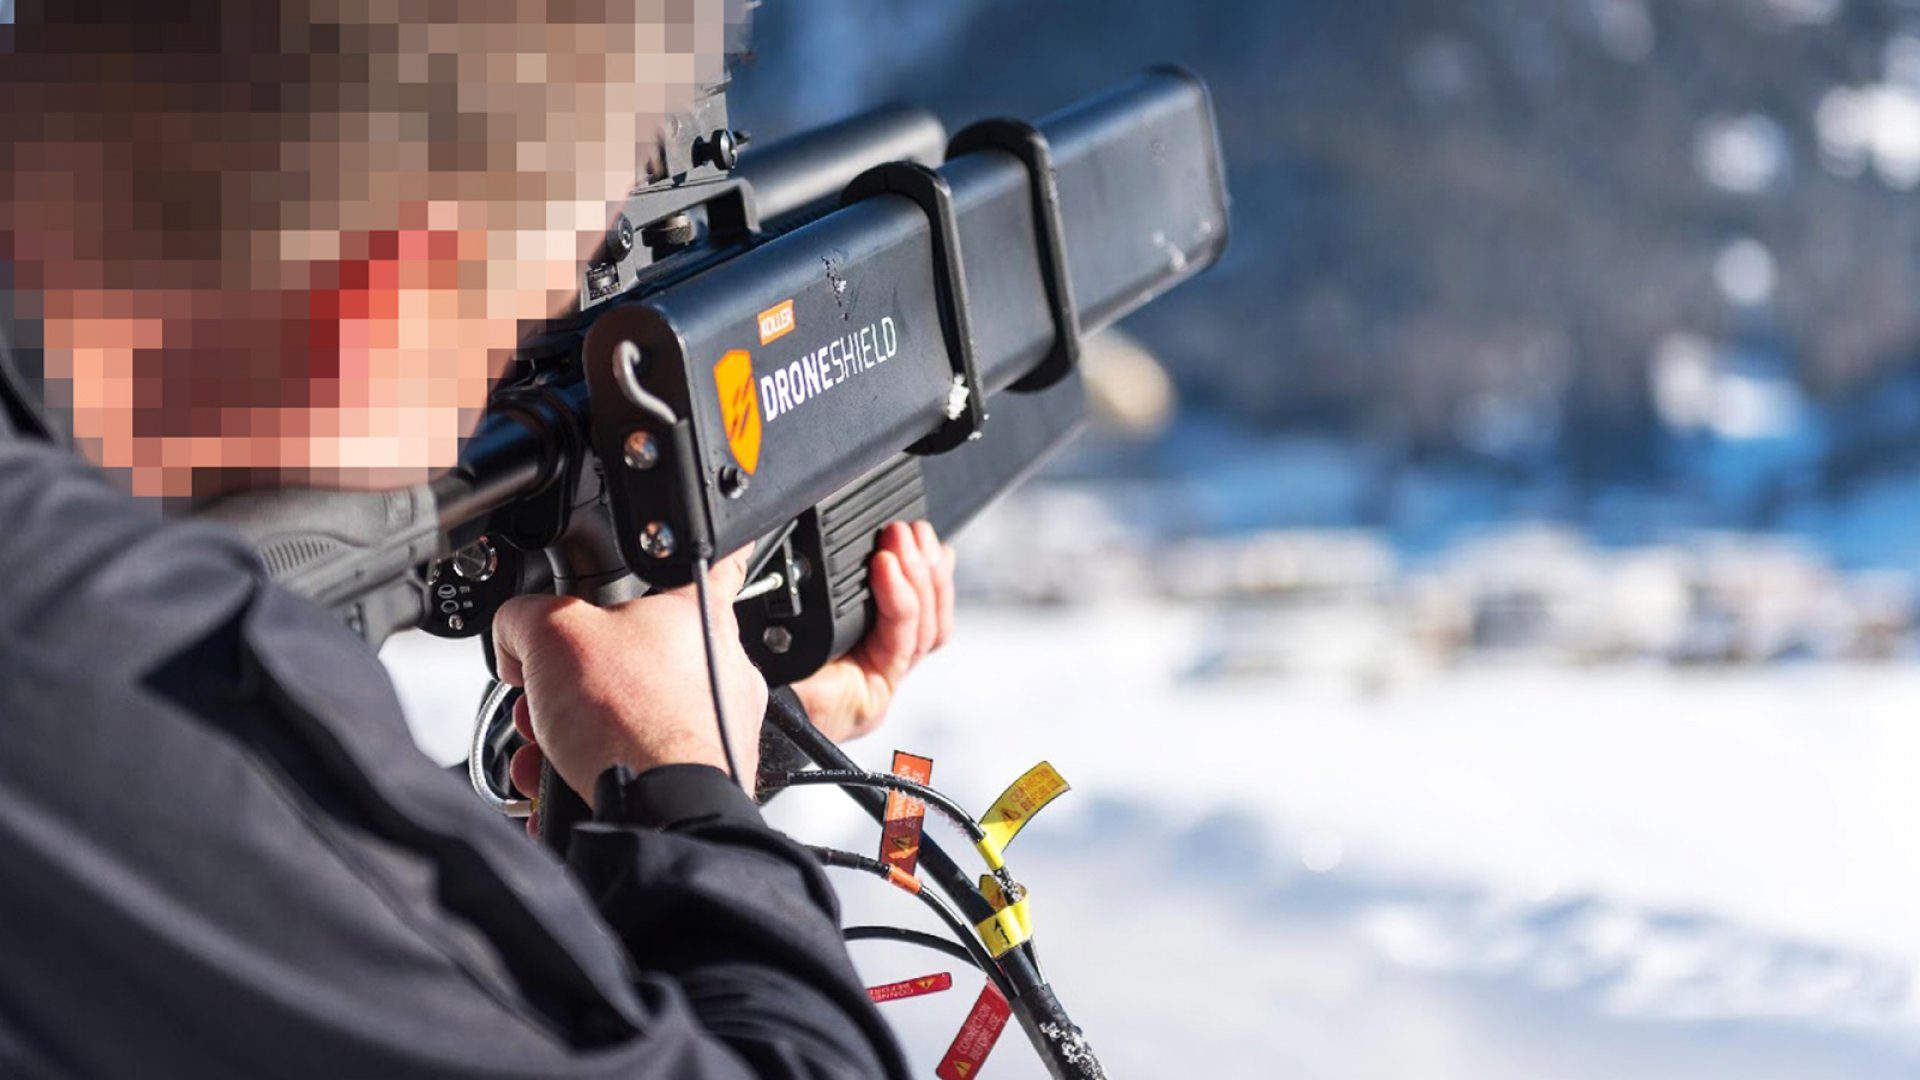 DroneGun deployment at the 2017 World Economic Forum by the Swiss police agency Police cantonal Graubünden.